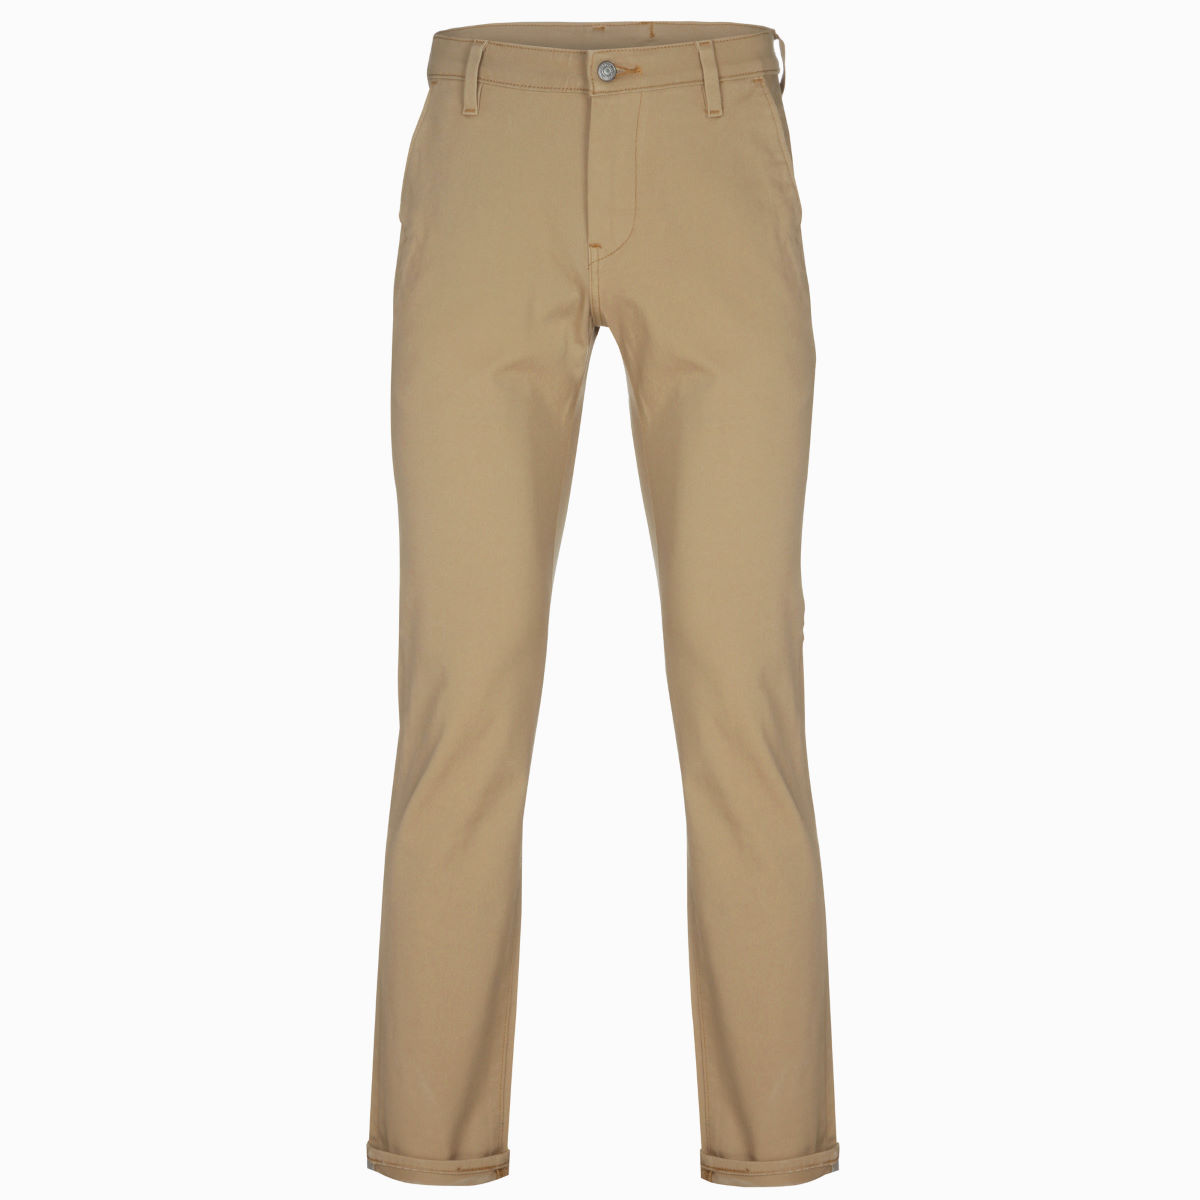 Pantalon Levi''s 511 Commuter (coupe slim) - 30' Harvest Gold